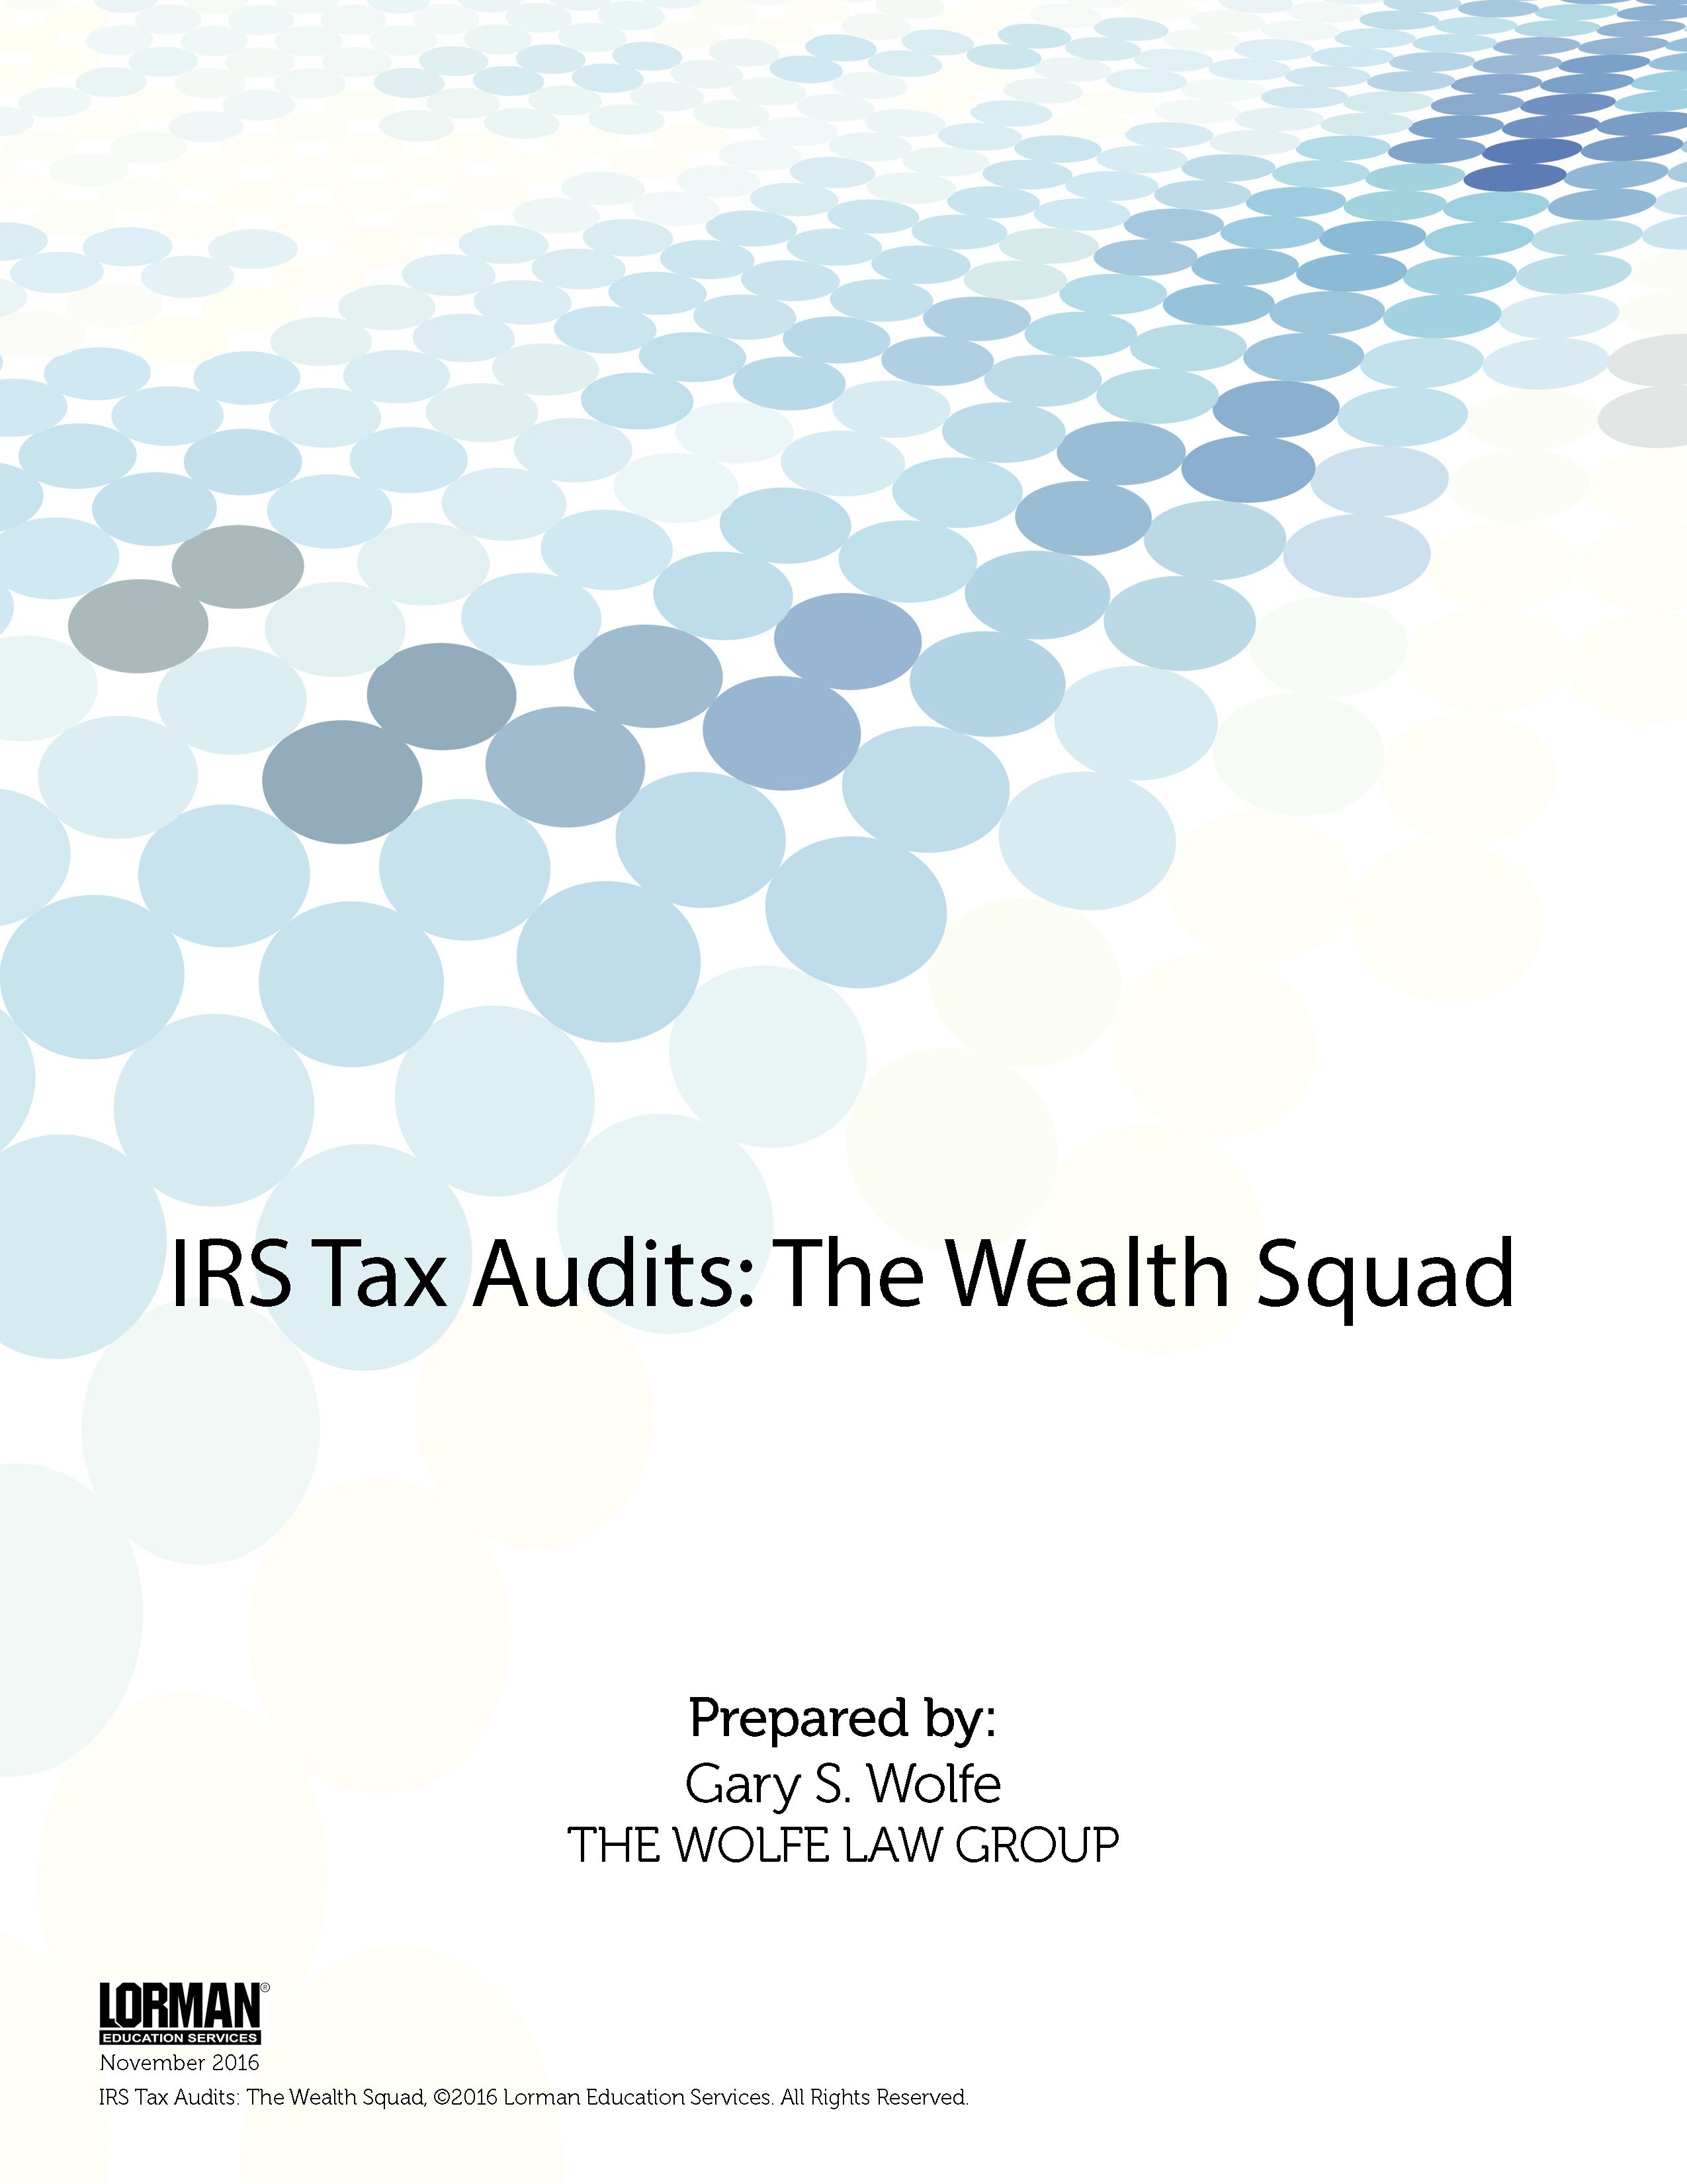 IRS Tax Audits - The Wealth Squad